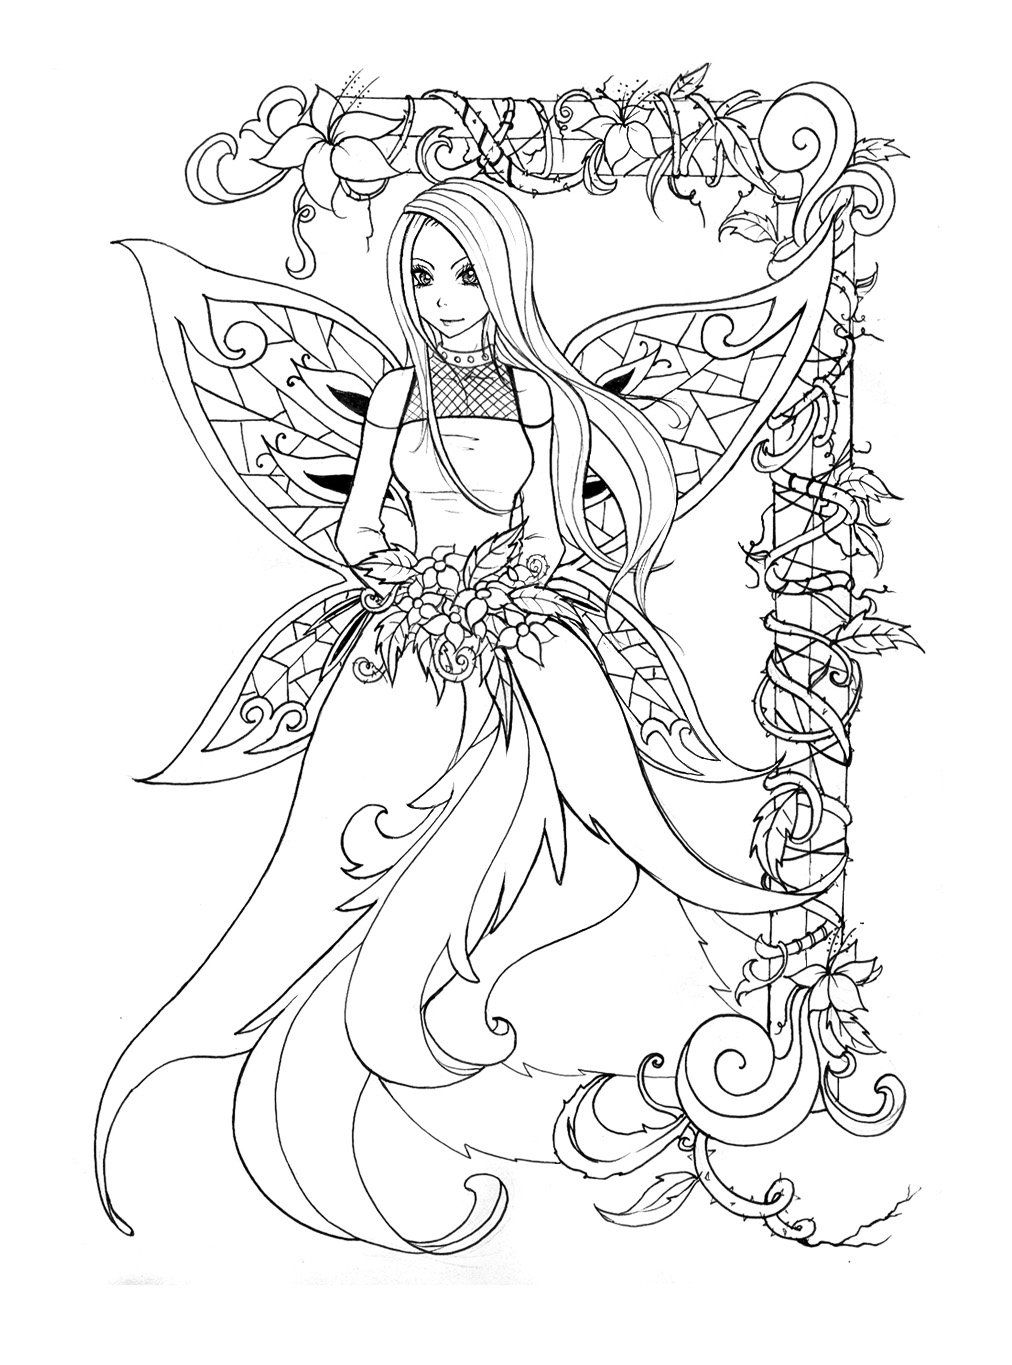 Lineart Fairy pic by back2life